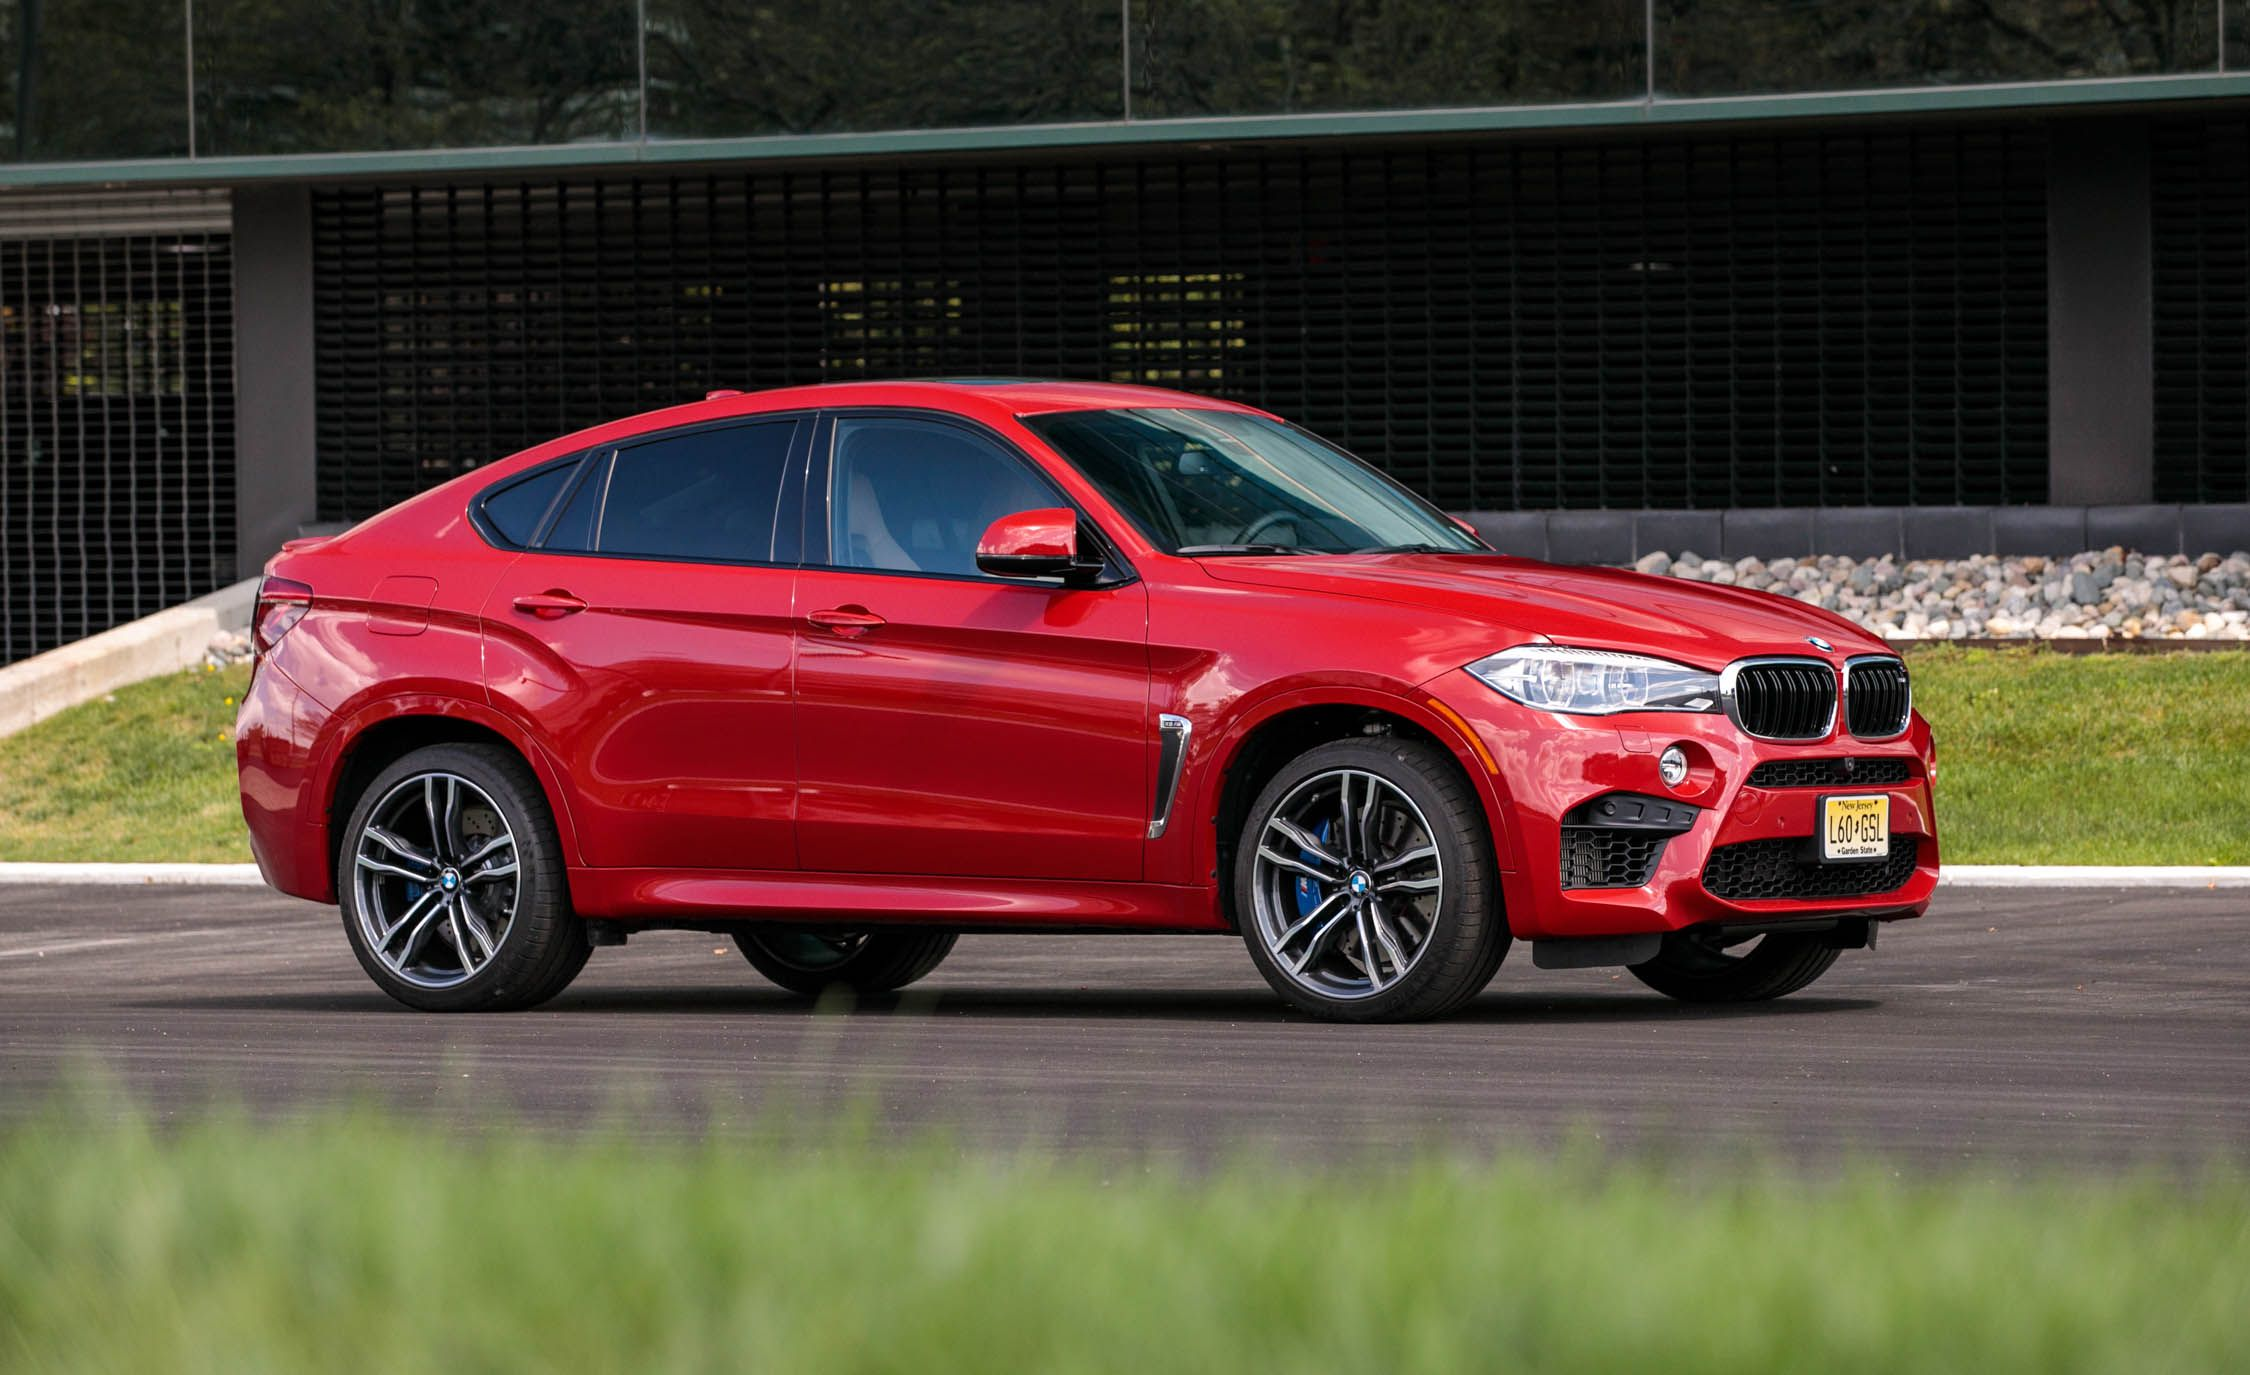 2018 Bmw X6 M Performance And Driving Impressions Review Car And